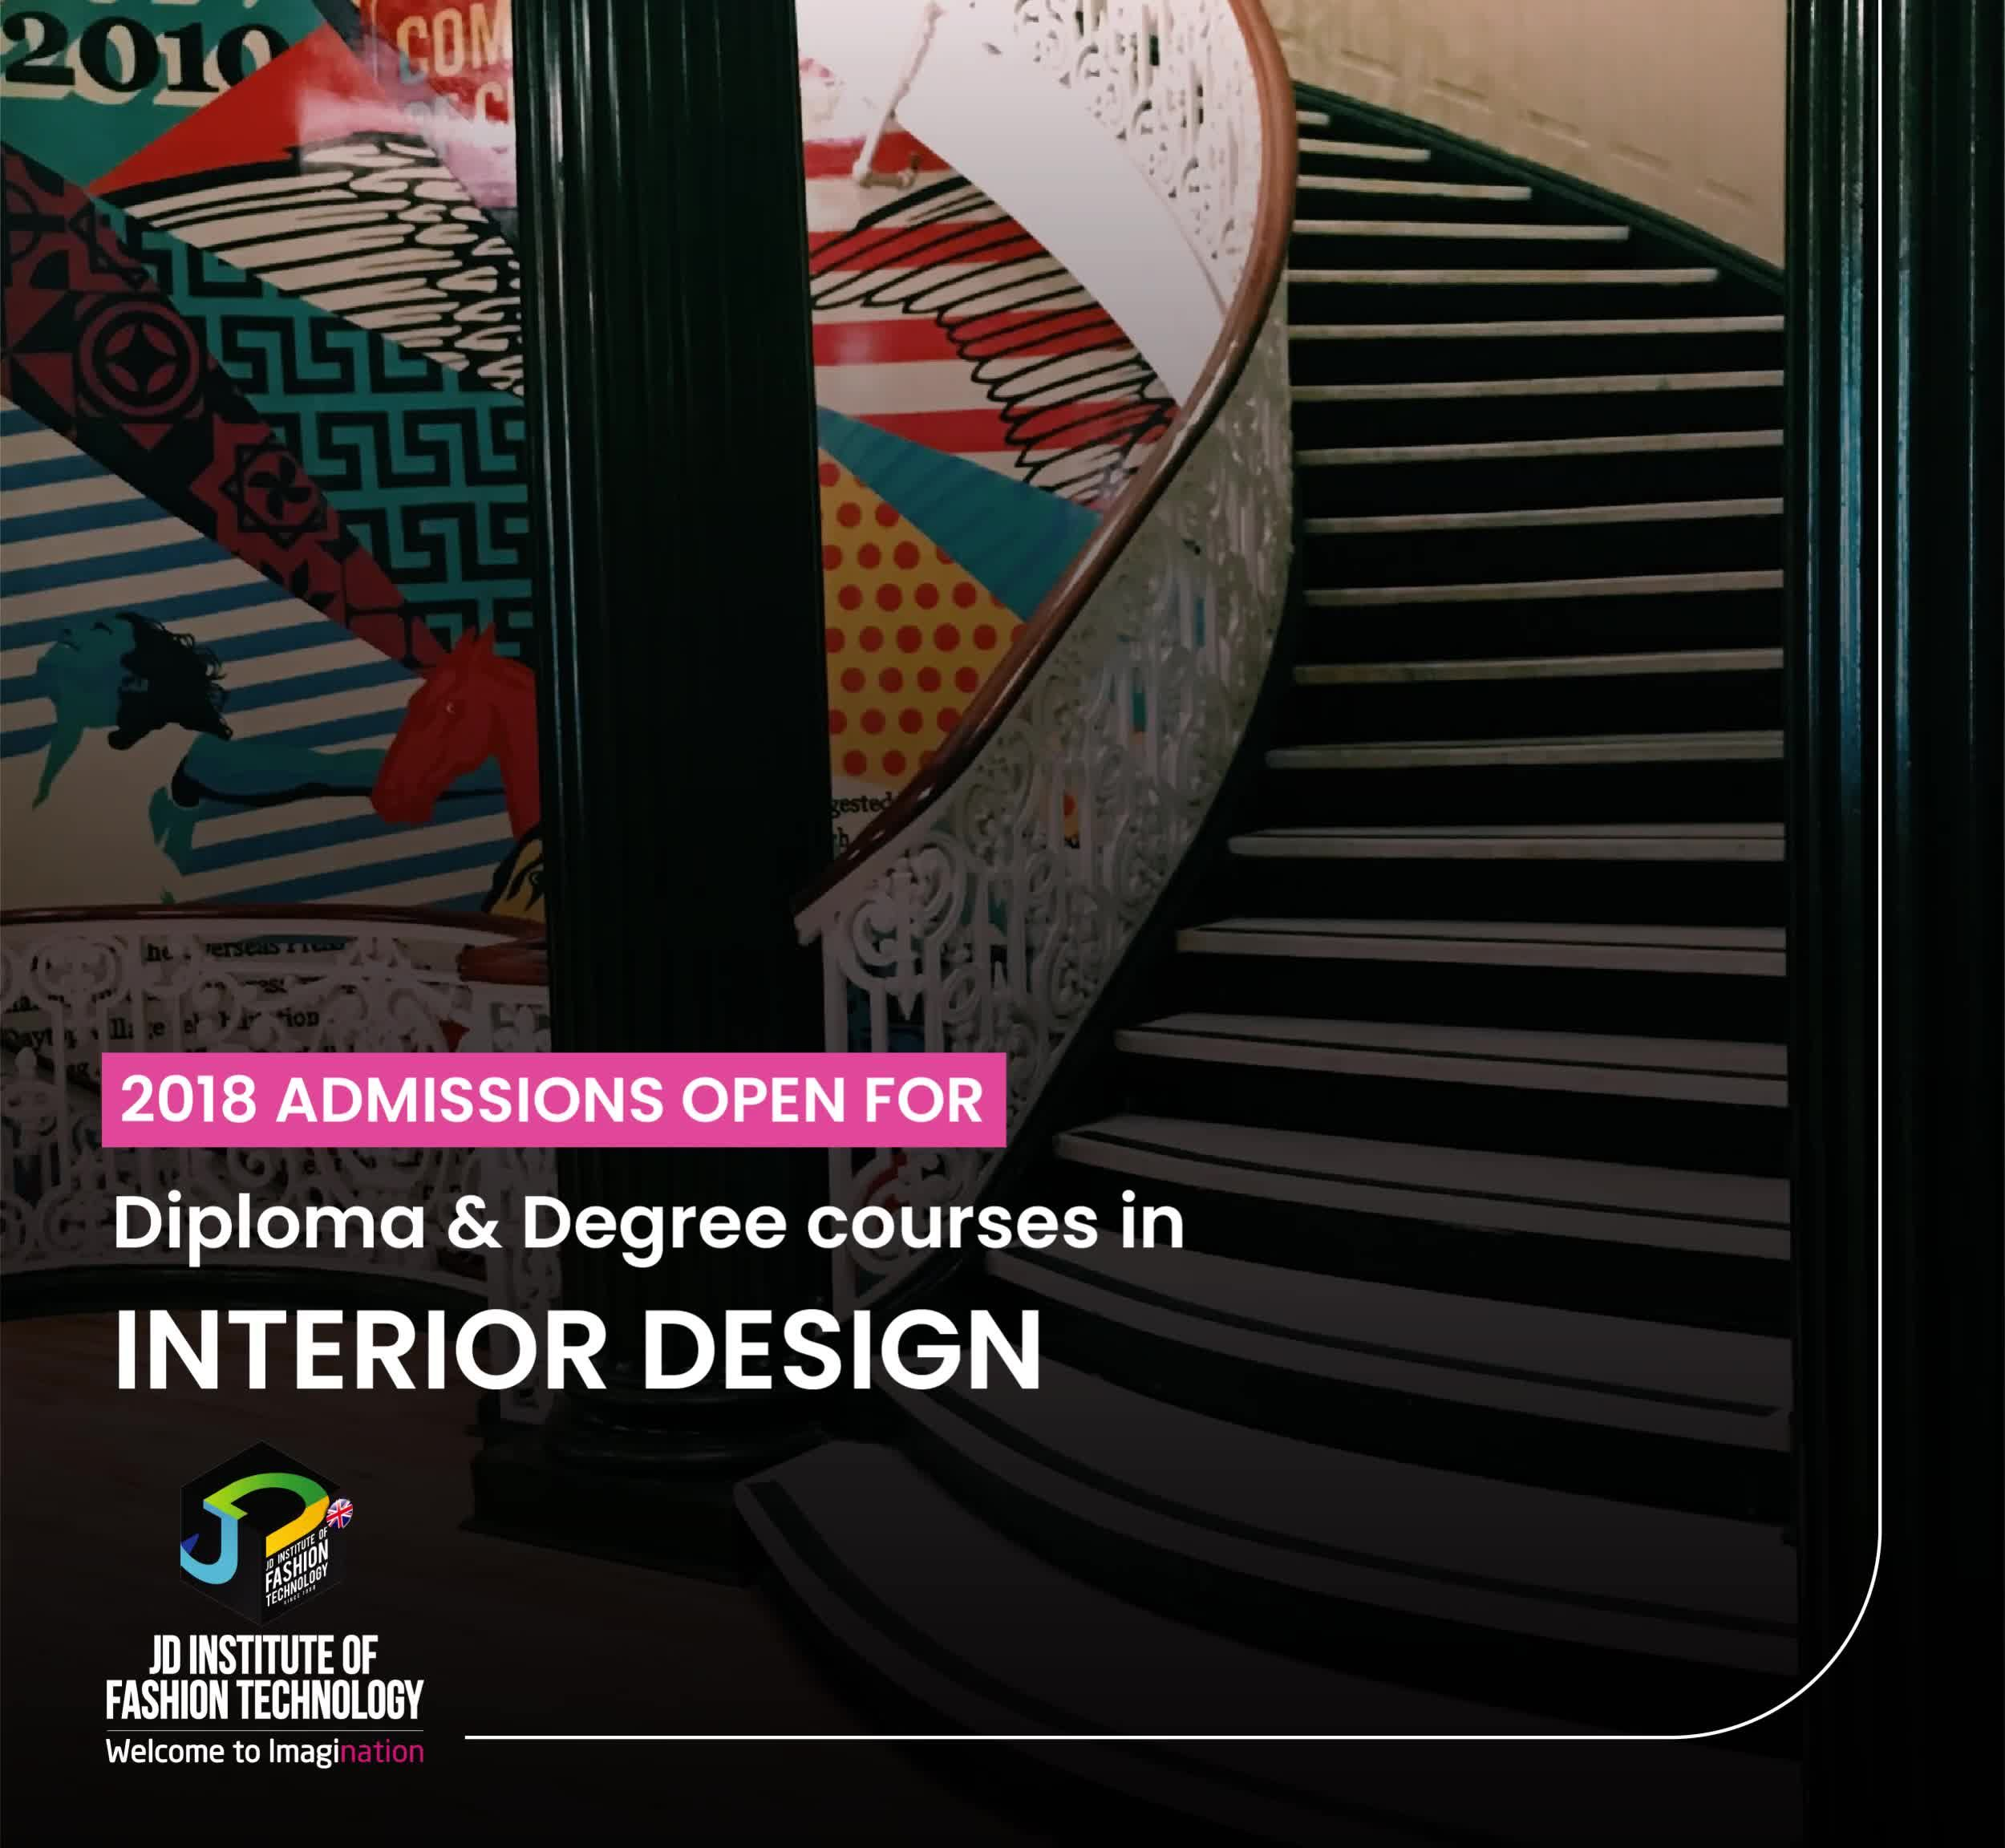 Fashion Designing Courses In Bangalore With Images Interior Design Courses Design Interior